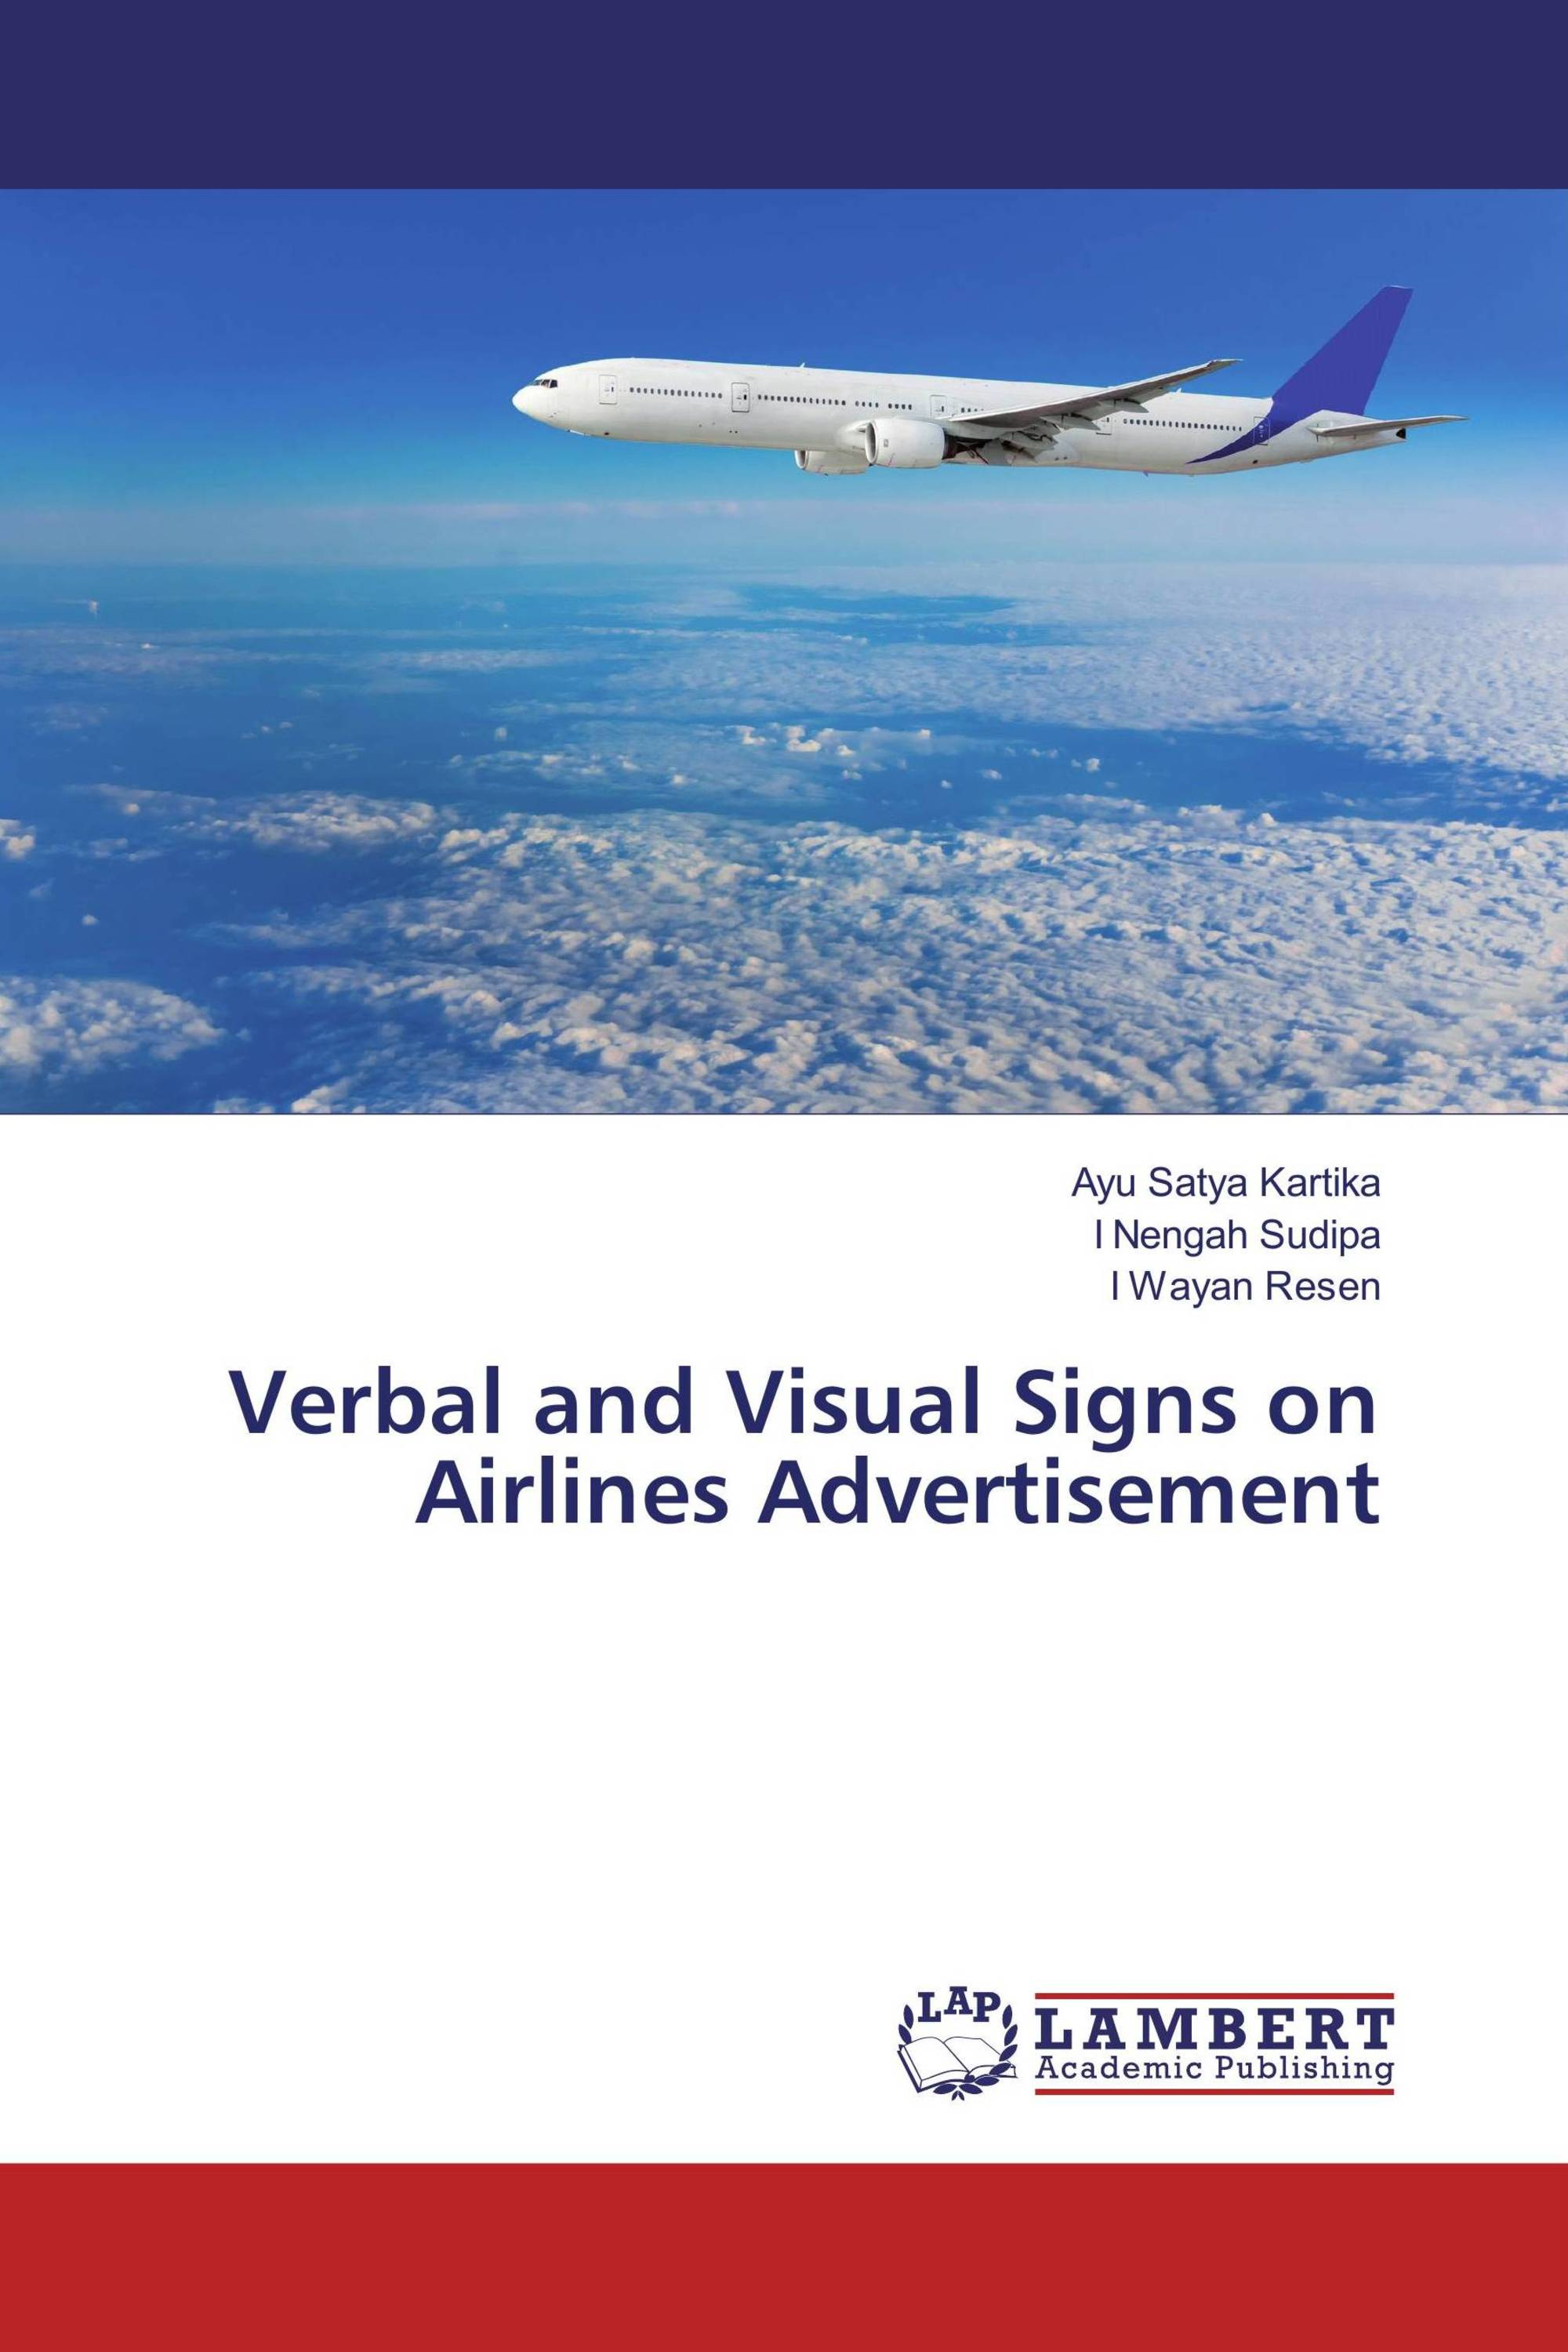 verbal and visual images theory advertising Verbal and visual images verbal and visual images it provides some assessment of the relative likelihood of either verbal or visual degenerating into idolatry.